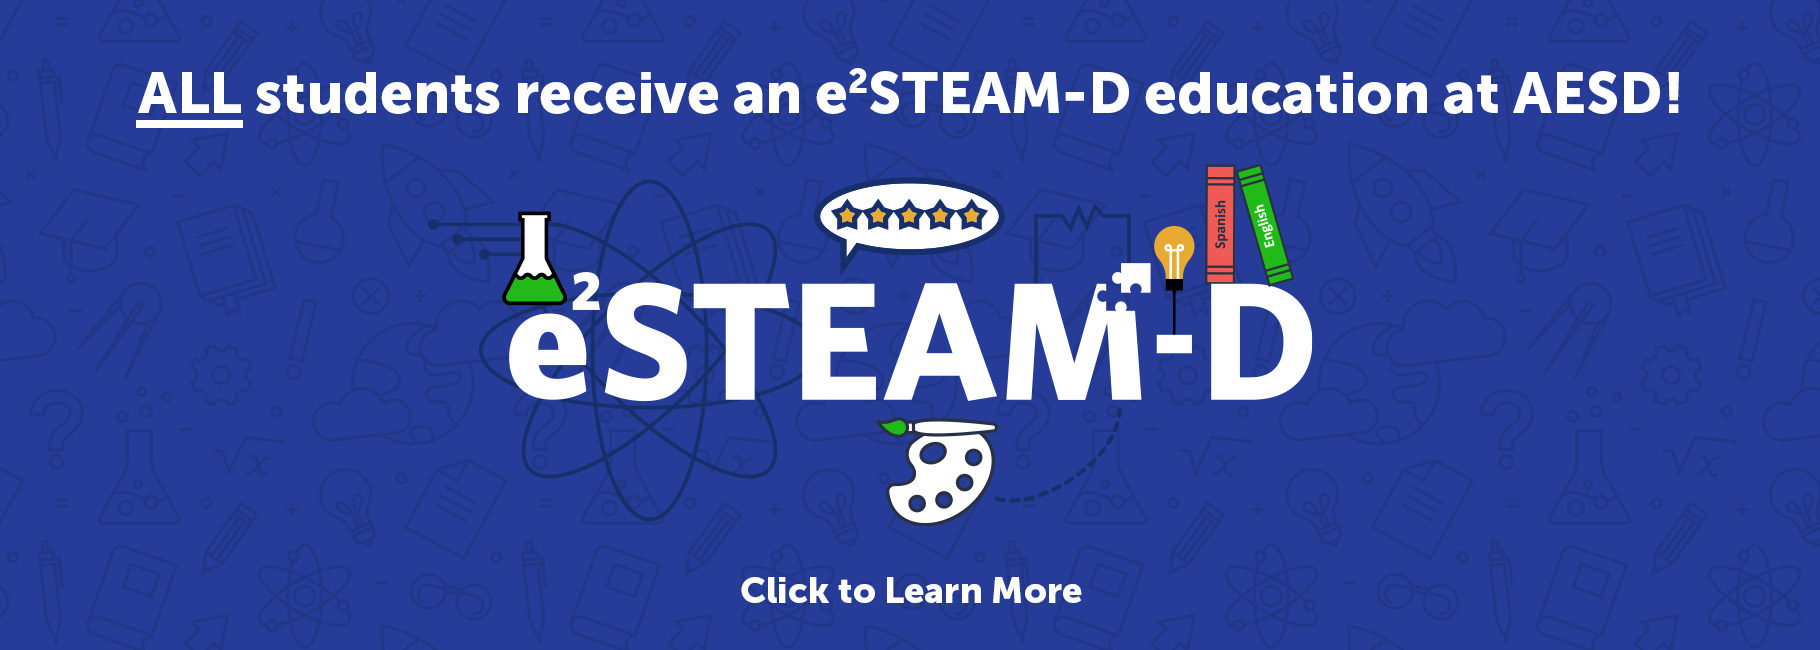 ALL students receive an e²STEAM-D education at AESD! Click to Learn More.